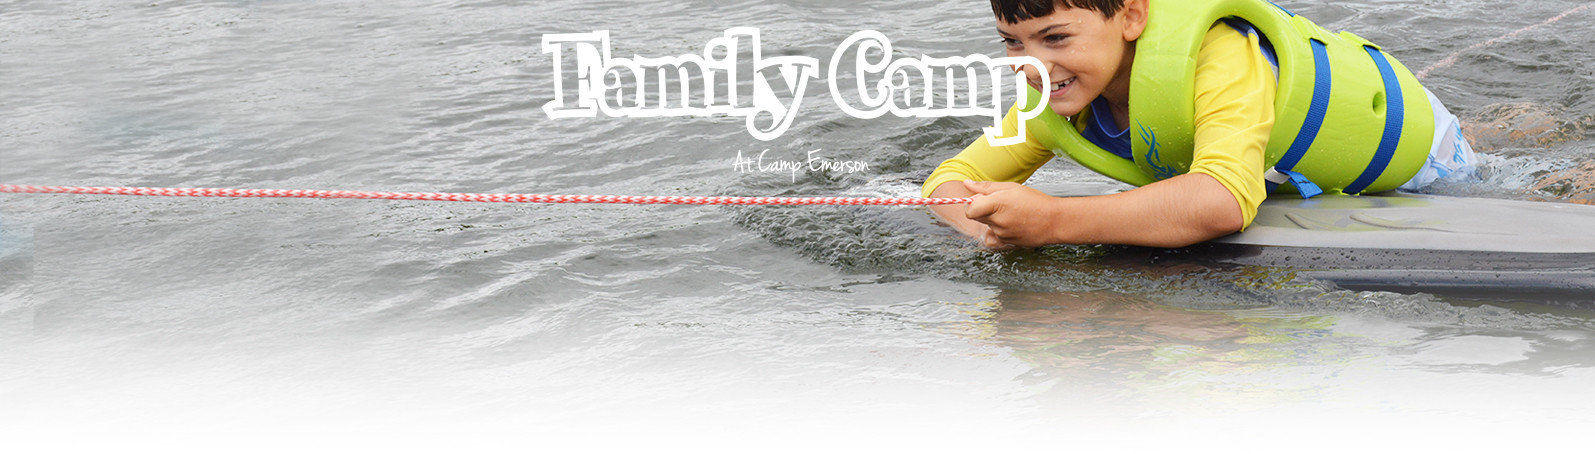 Family InternalHeader 03